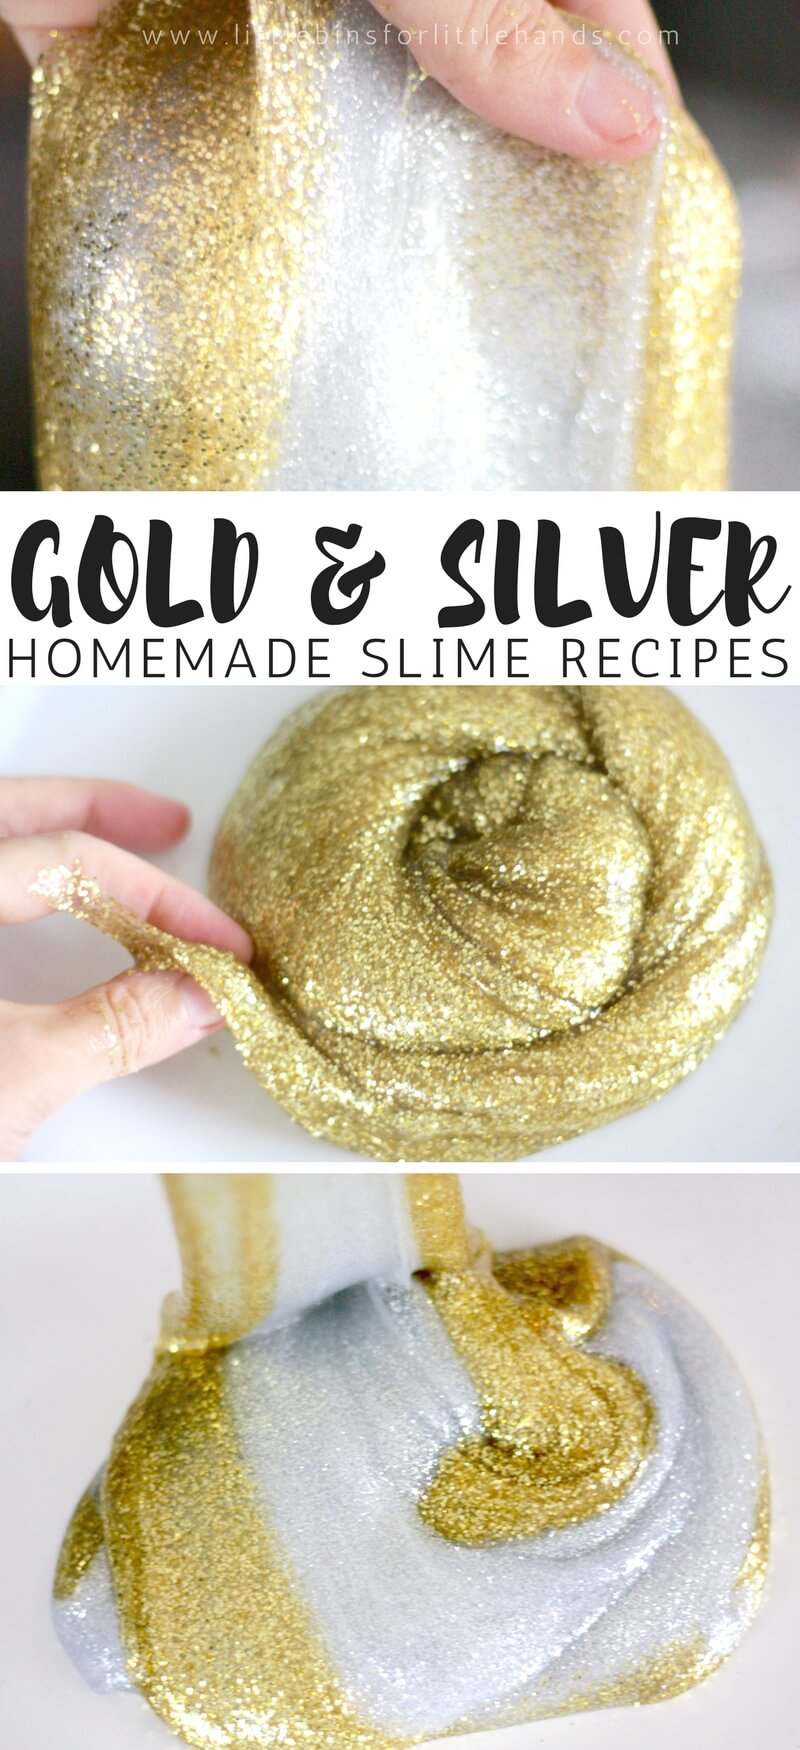 Absolutely gorgeous and glistening gold and silver slime recipes for kids to make! Learn how to easily make these two beautiful metallic slimes with our super simple and super stretchy slime recipe! There's a special ingredient we add in addition to using one of our favorite basic slime recipes. Homemade slime is awesome!